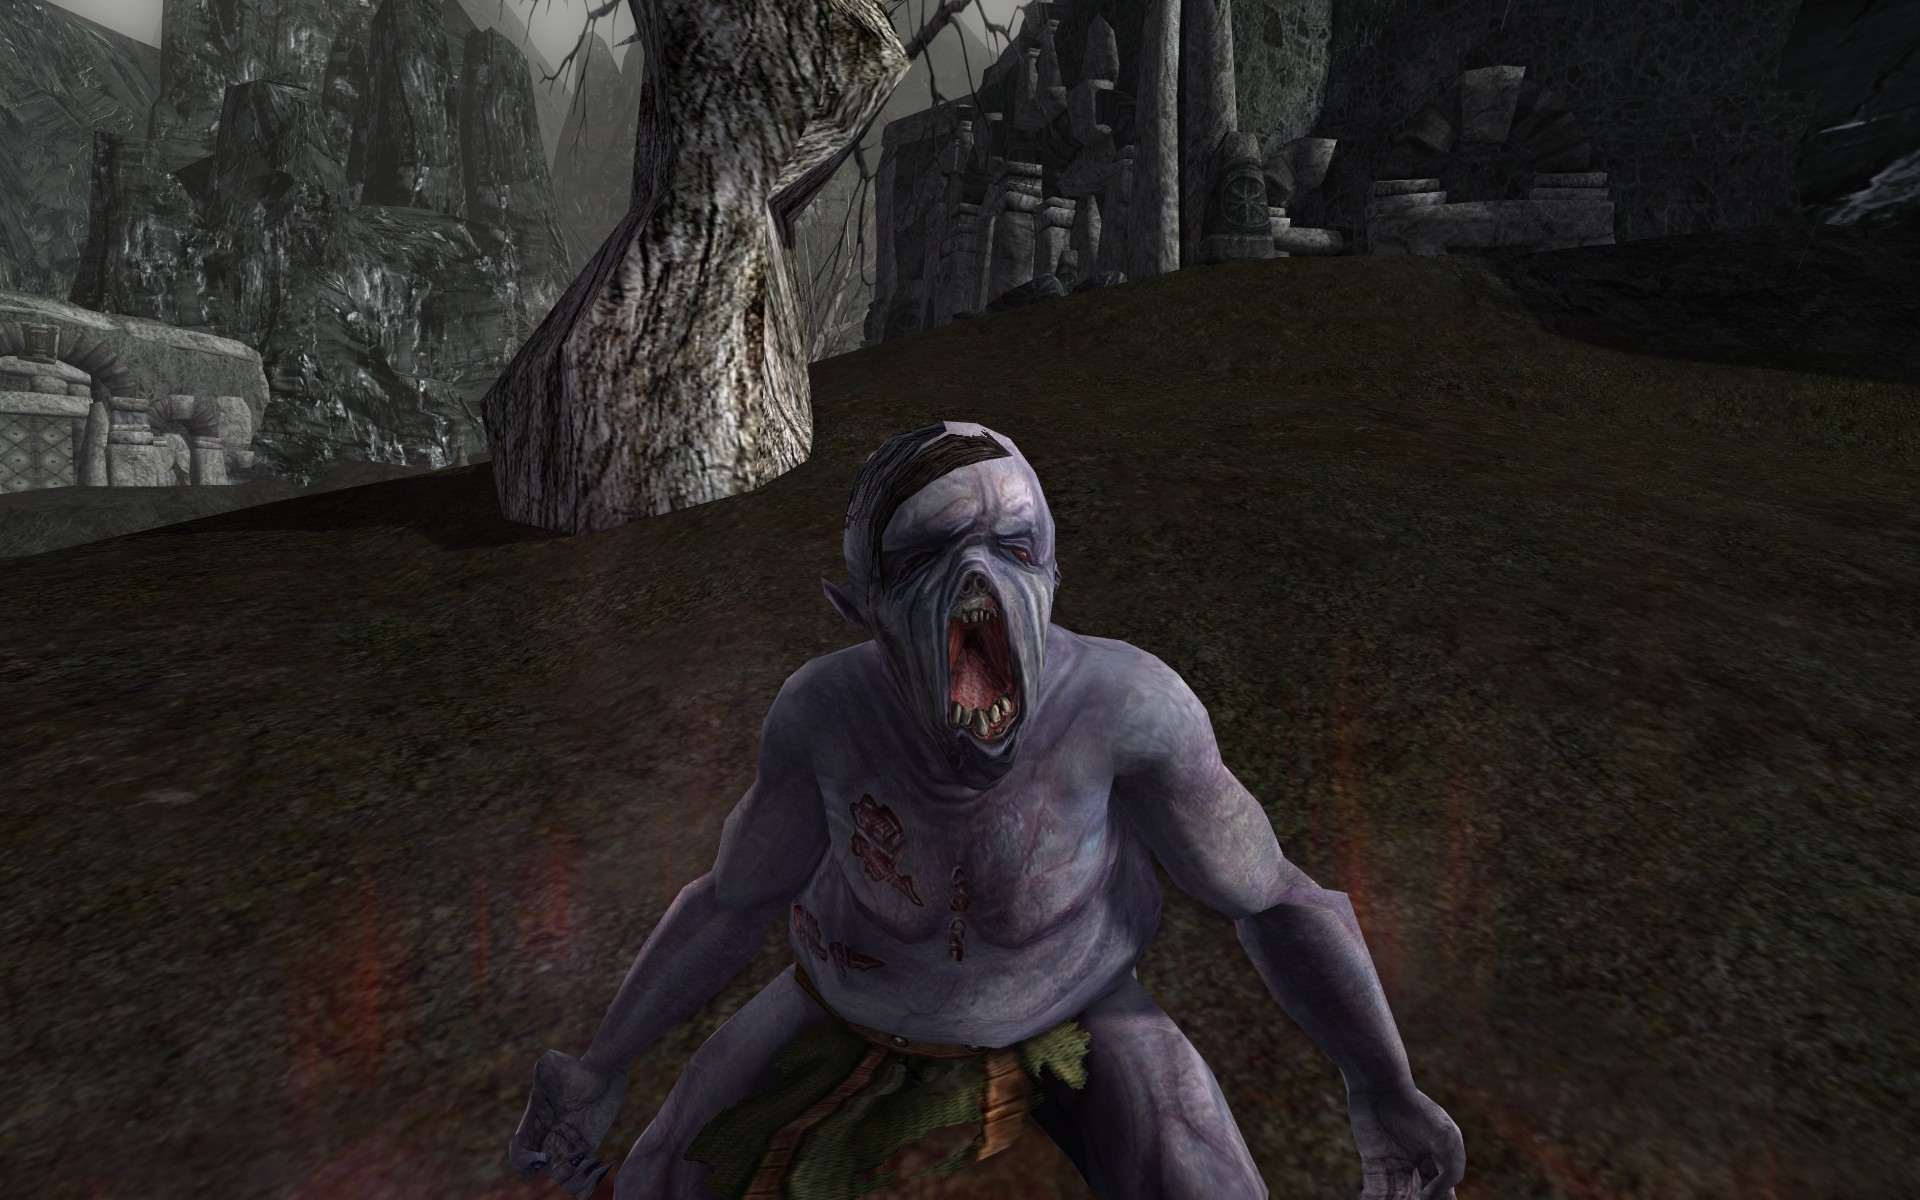 Lord of the Rings Online - *Hugs*